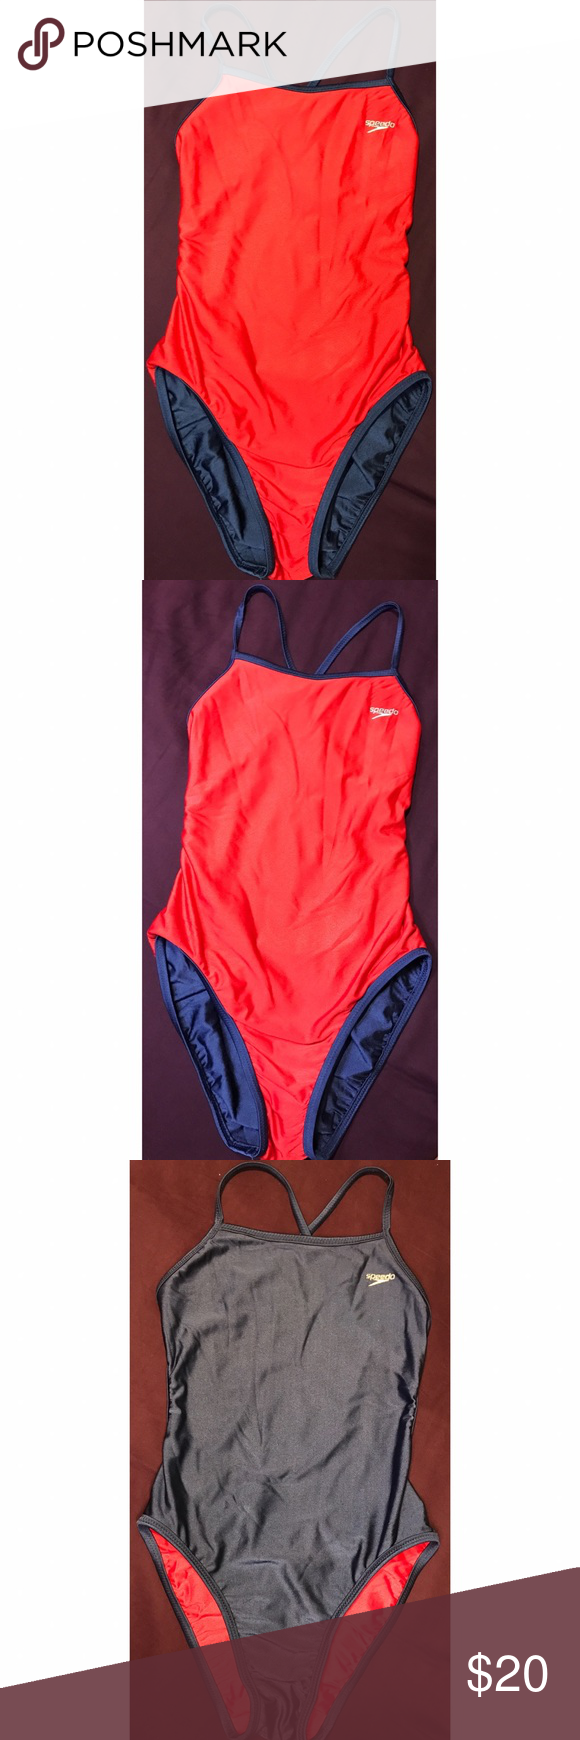 ✨💙SPEEDO REVERSIBLE BATHING SUIT❤️✨ Super cute REVERSIBLE one piece Speedo bathing suit! Perfect for a 4th of July BBQ💙❤️ or jst sometime this Summer by the pool or at the beach! ❤️✨👙 Worn once, still in immaculate condition!! Great Open Strappy back detail!  ✨BUNDLE & SAVE✨  **💕REASONABLE OFFERS WELCOME!💕**   ✨Comes from a smoke free environment ✨  ***TAGS: American Apparel, Topshop, Gap, Ralph Lauren, Forever 21, F21, H&M. Speedo Swim One Pieces